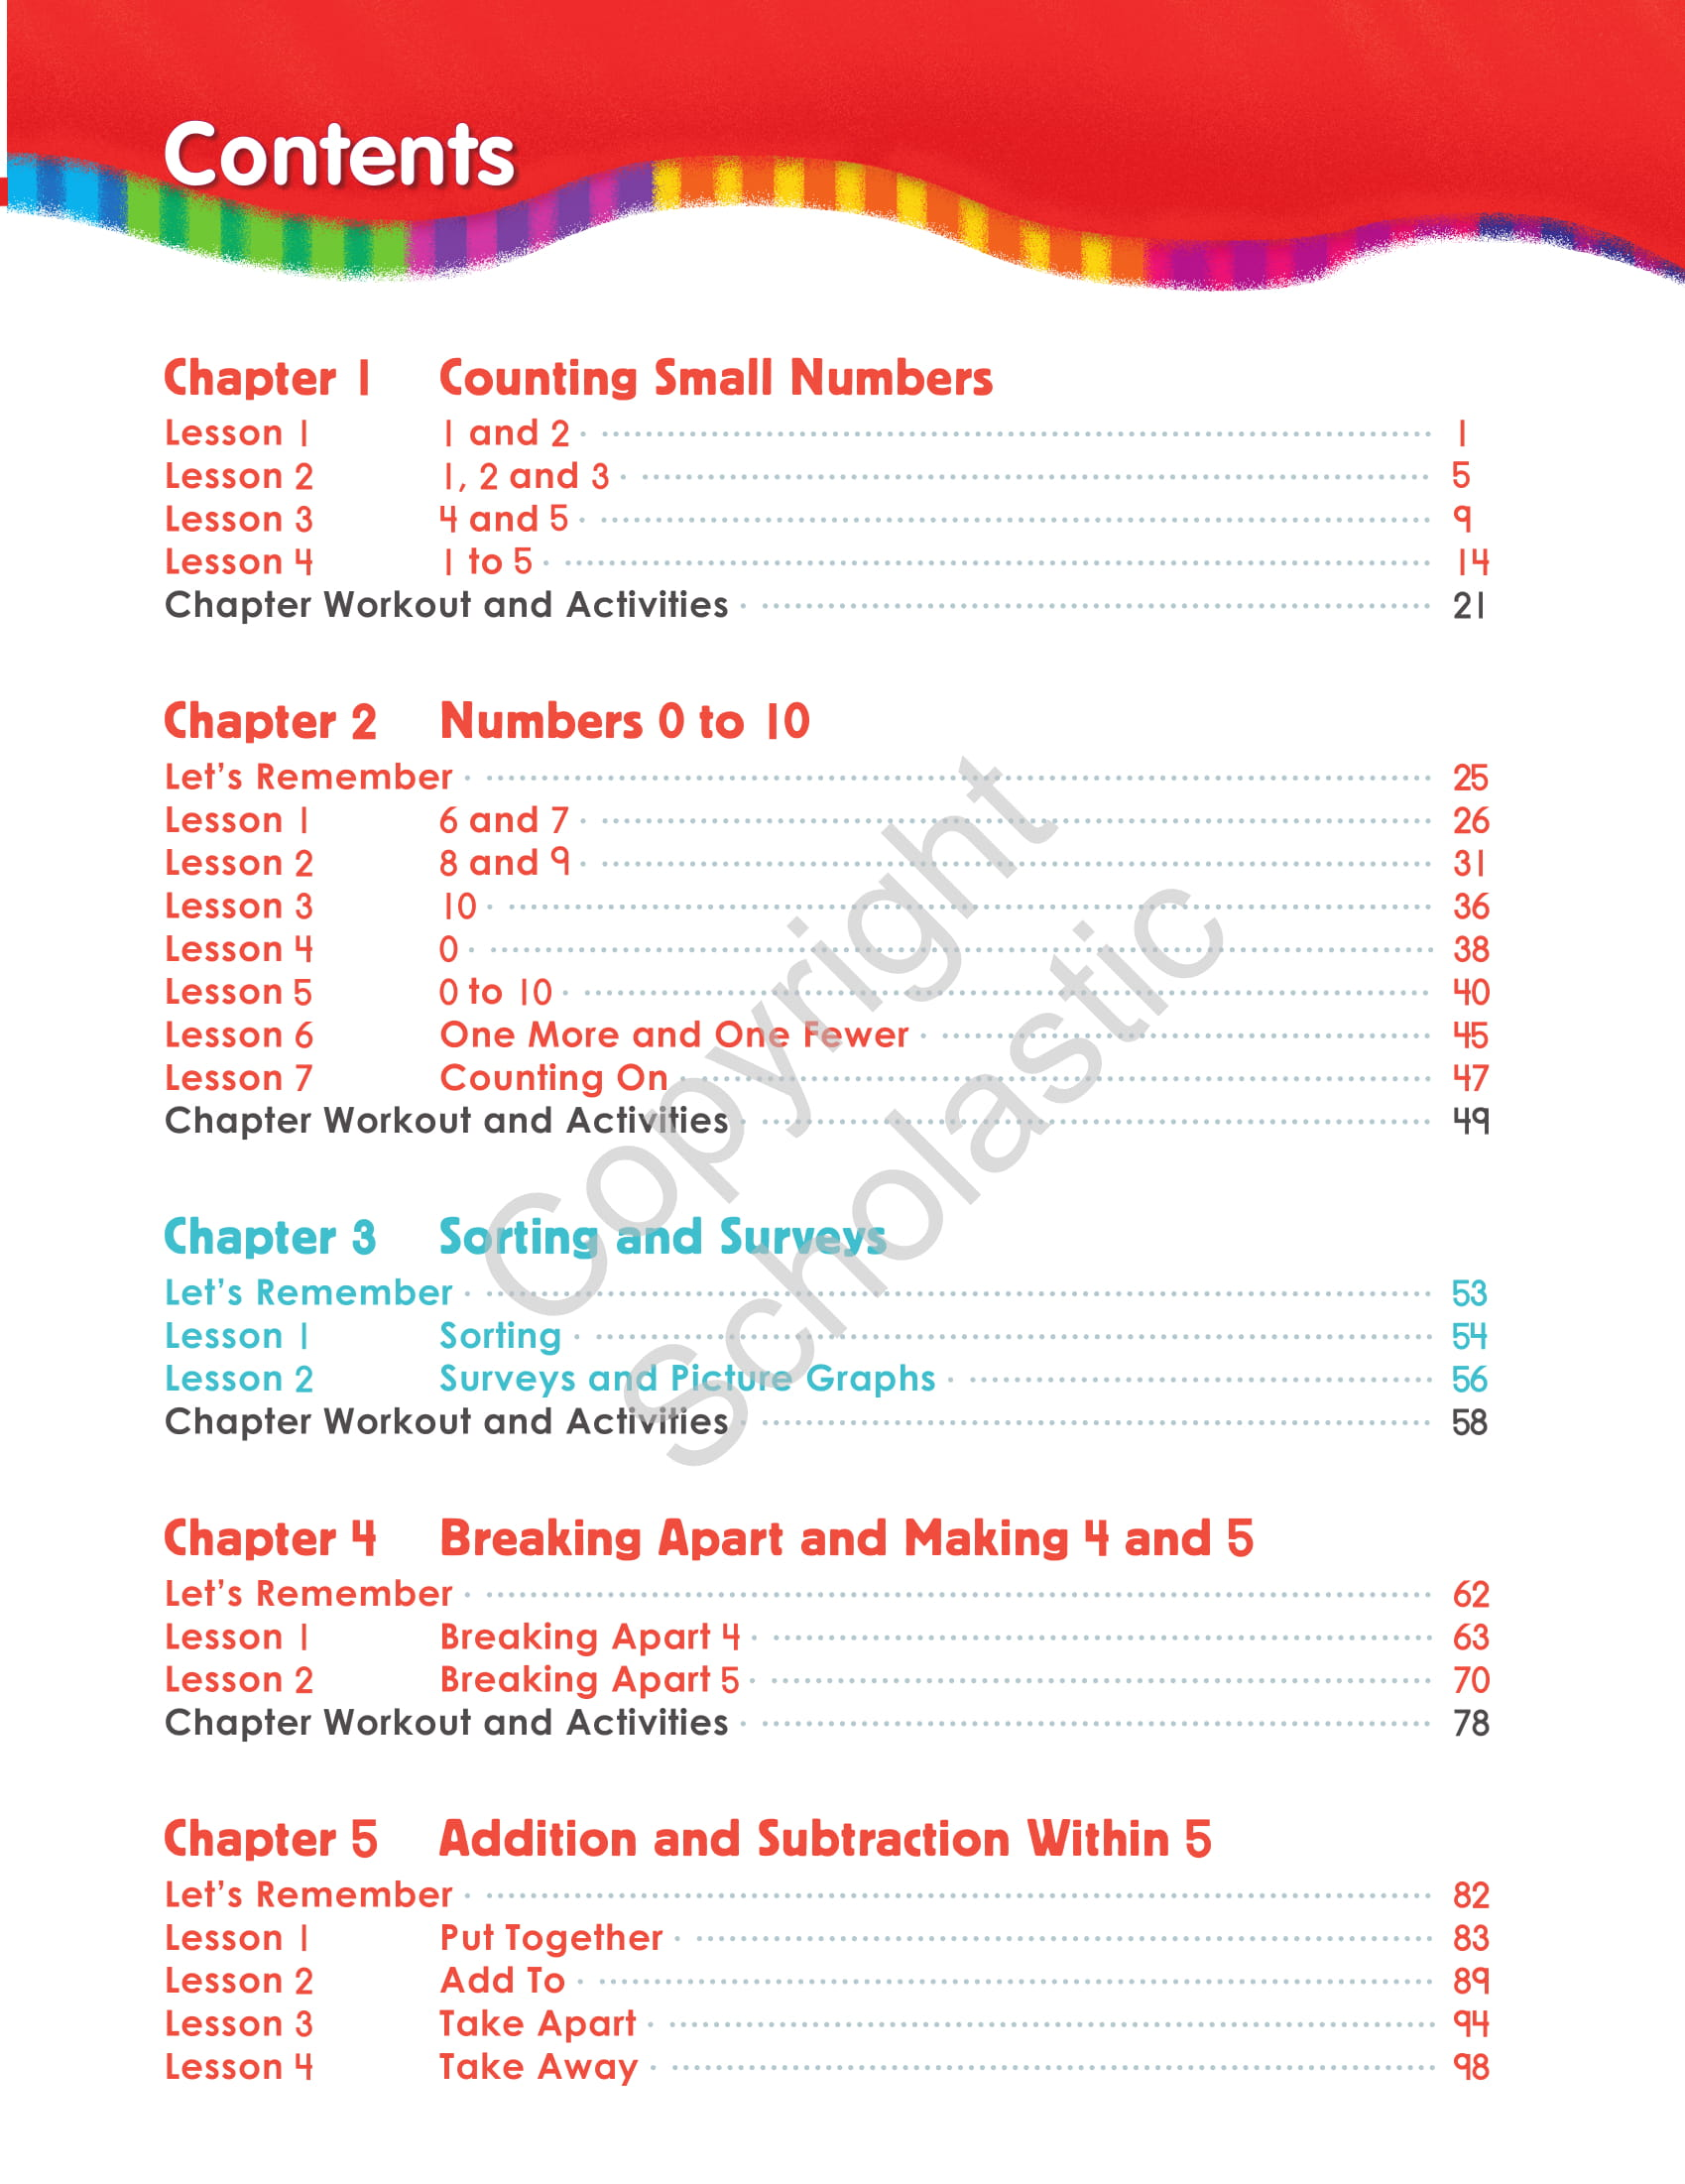 Core Material - Student Book